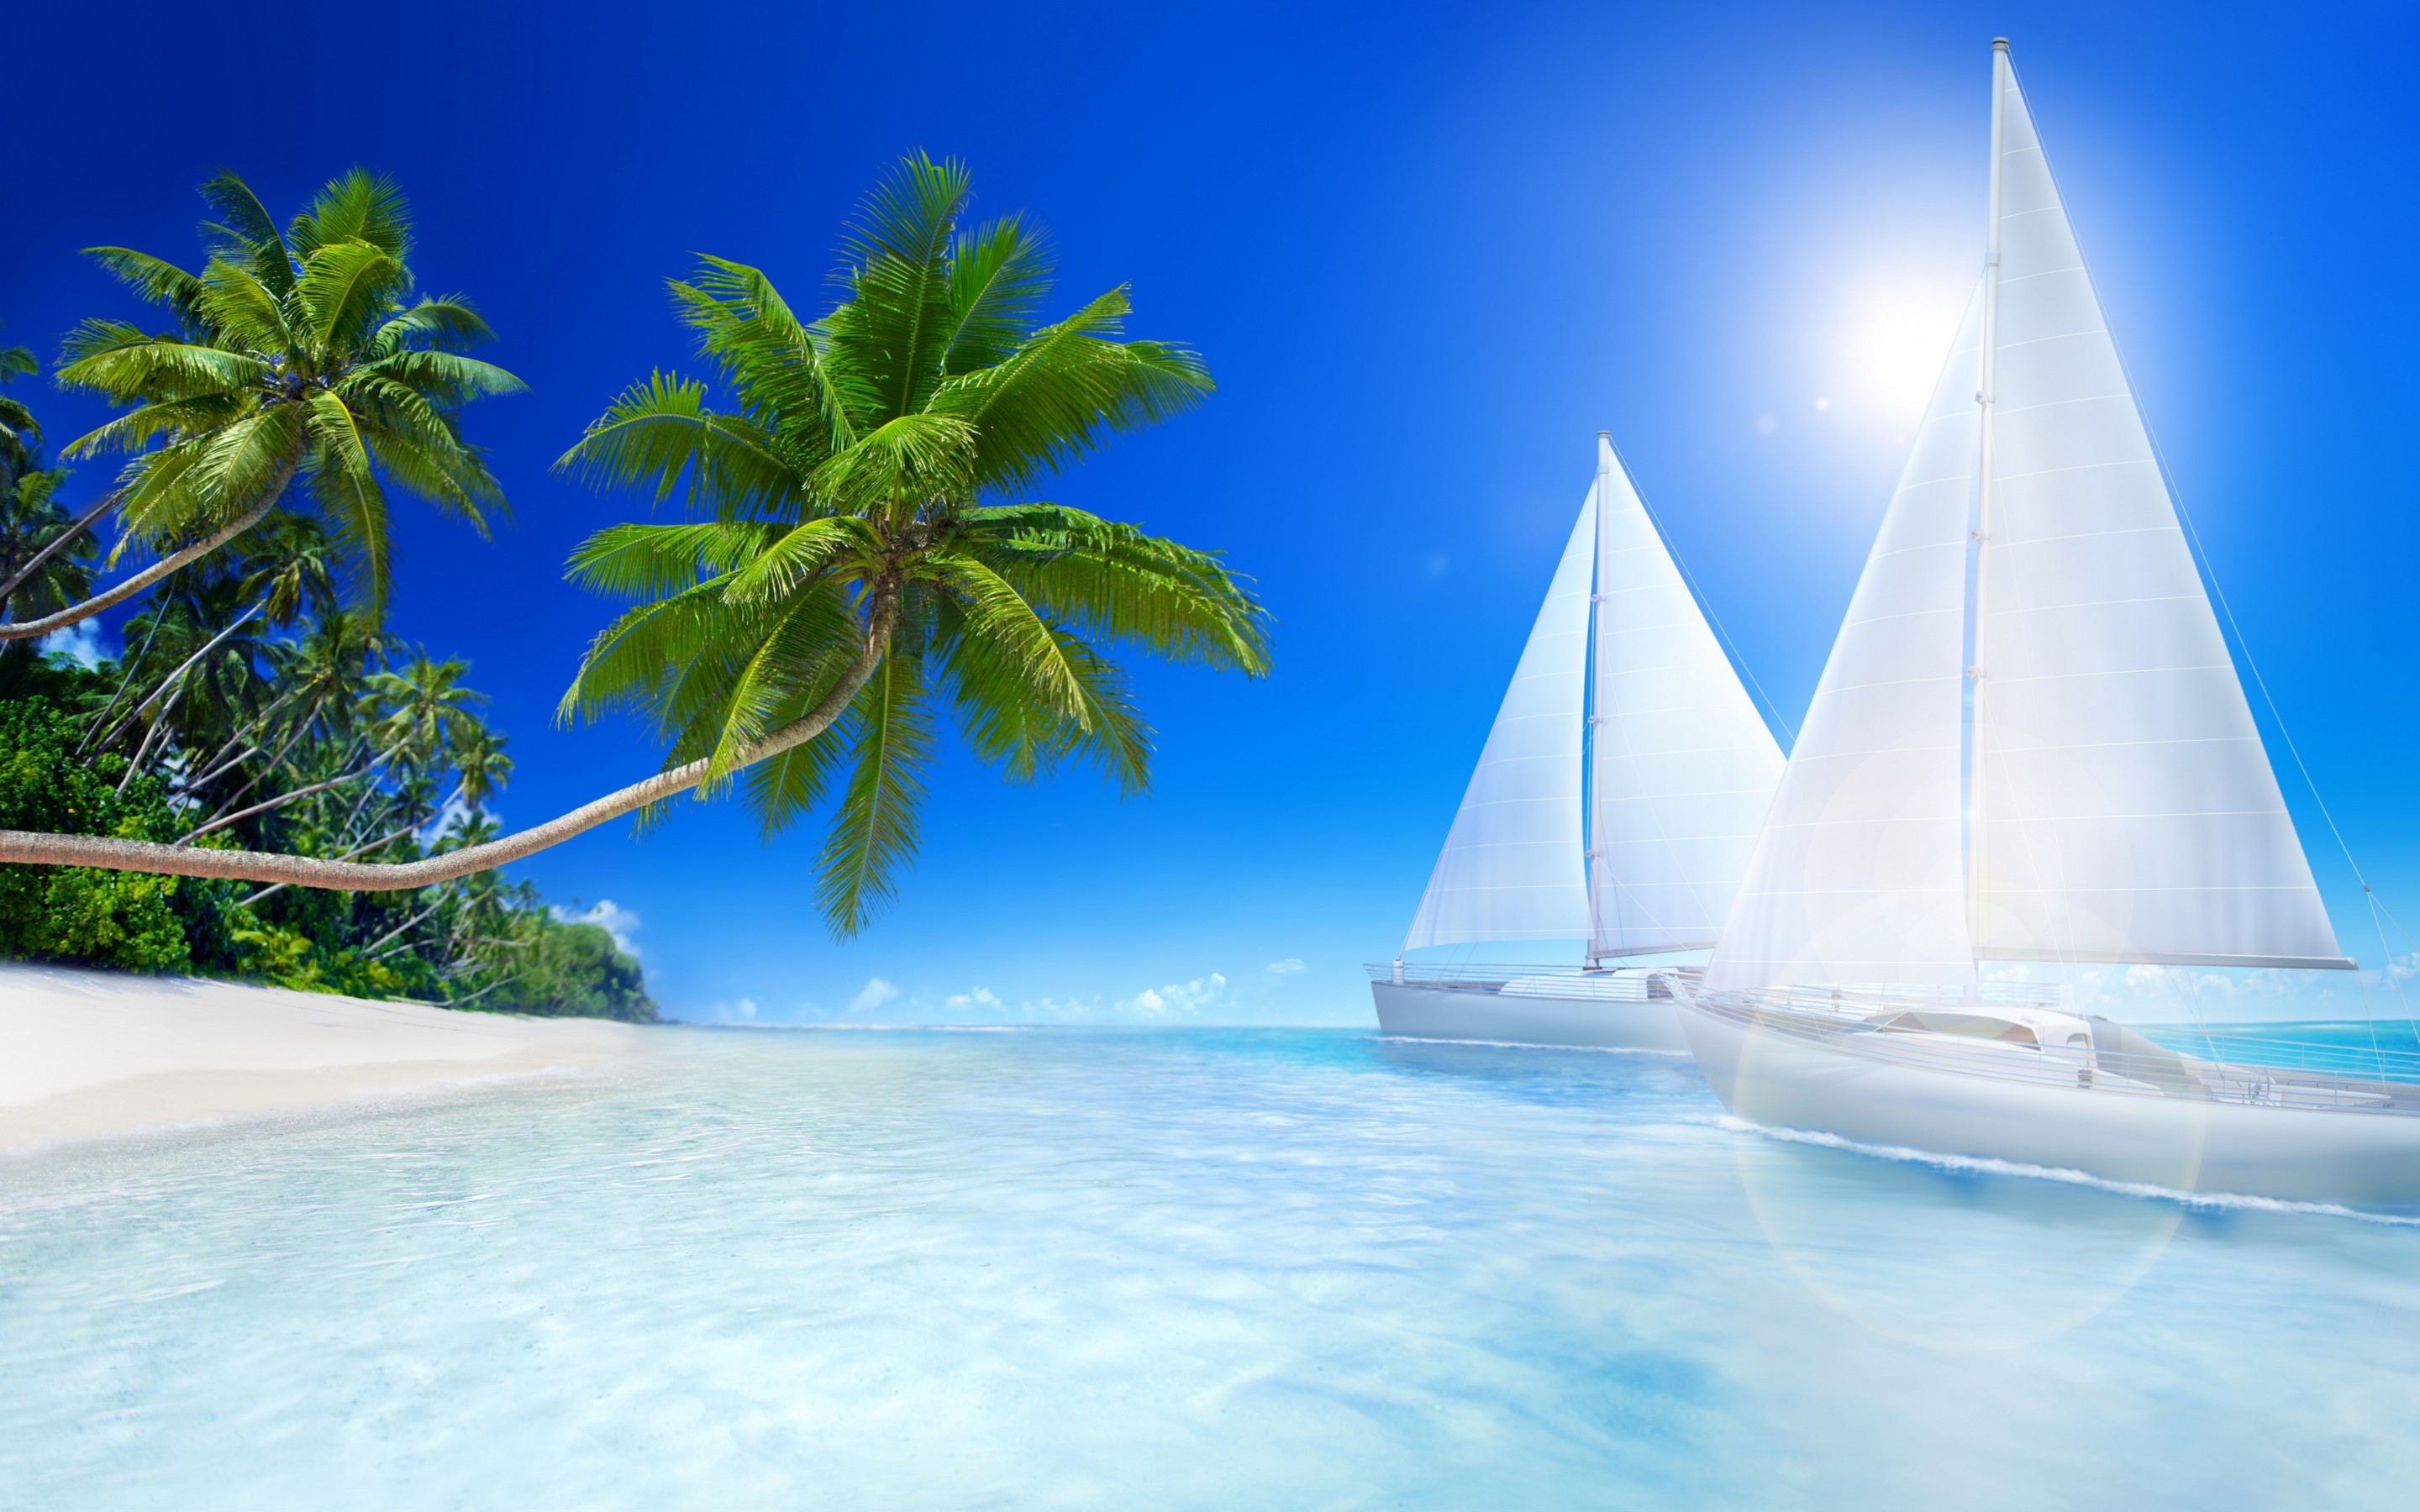 Tropical Beach Palms And Sailboat On The Sea